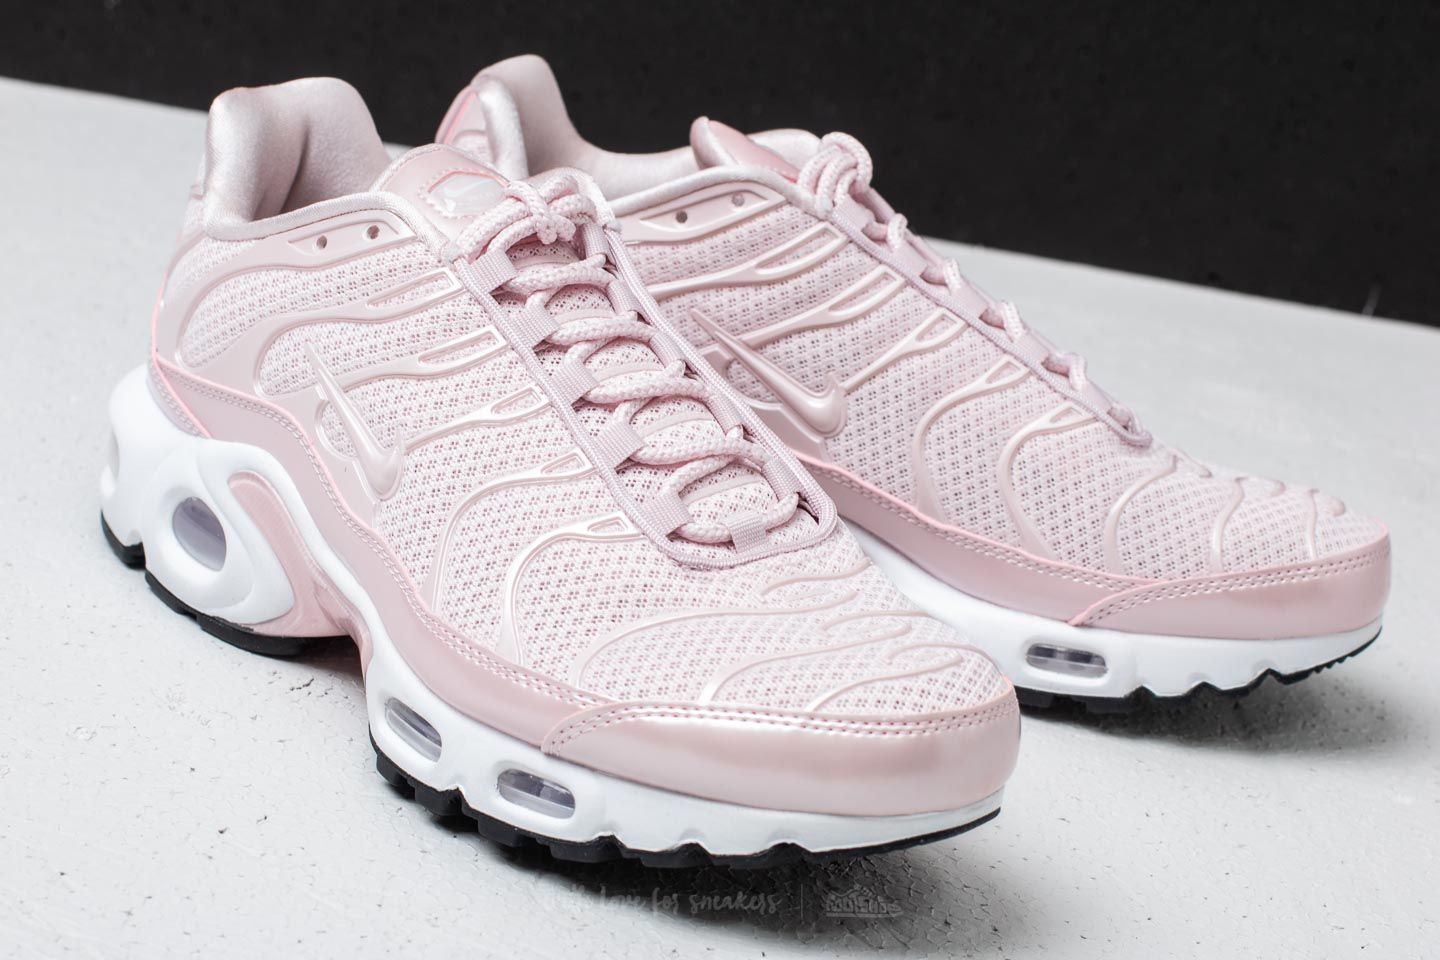 grand choix de 01cdd 8aa62 Nike Air Max Plus Premium WMNS Barely Rose/ Barely Rose ...